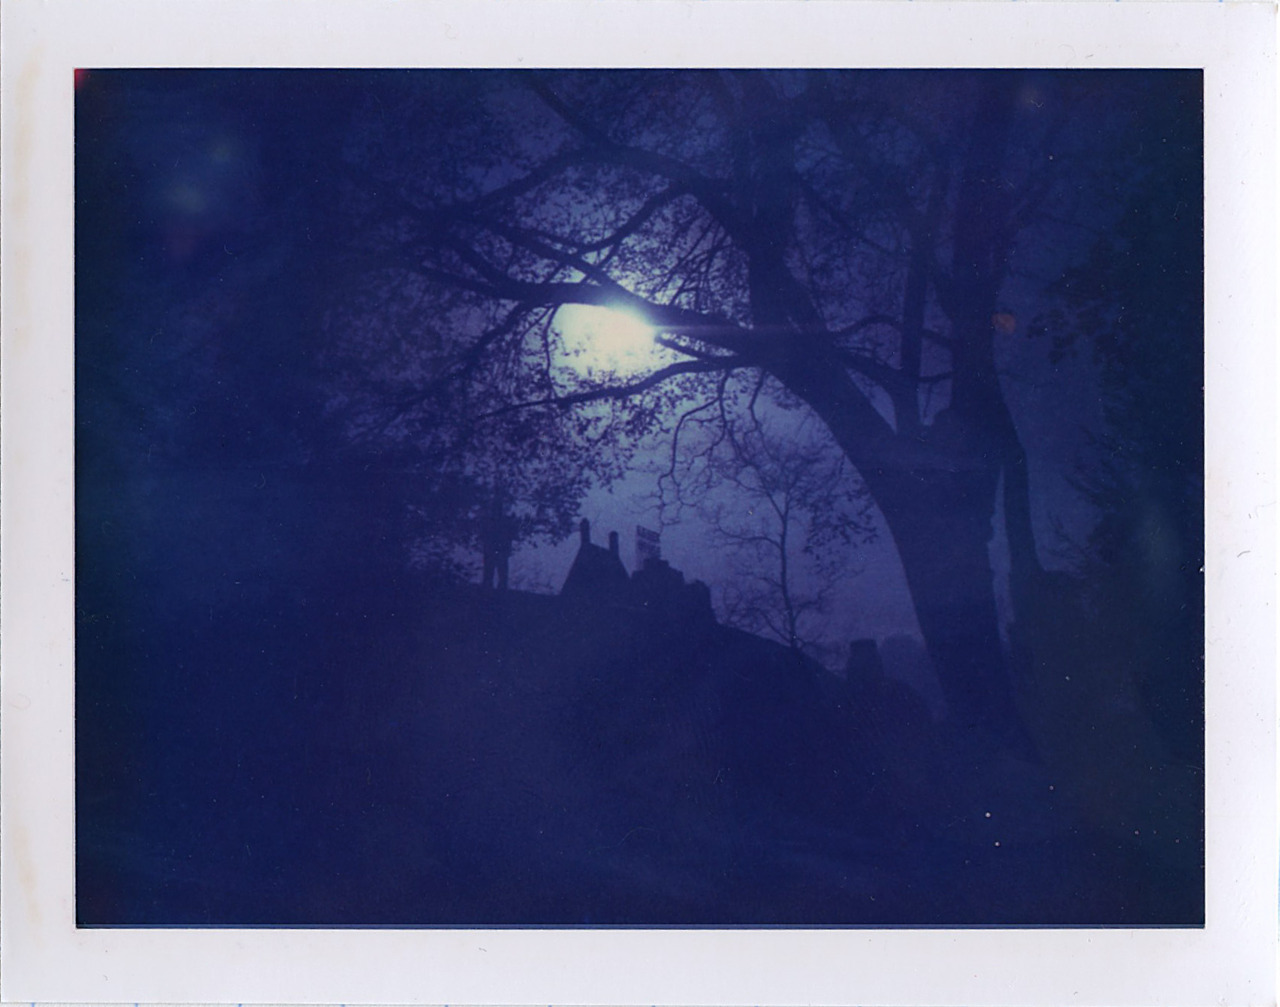 essex house  ..from central park.  polaroid 669.